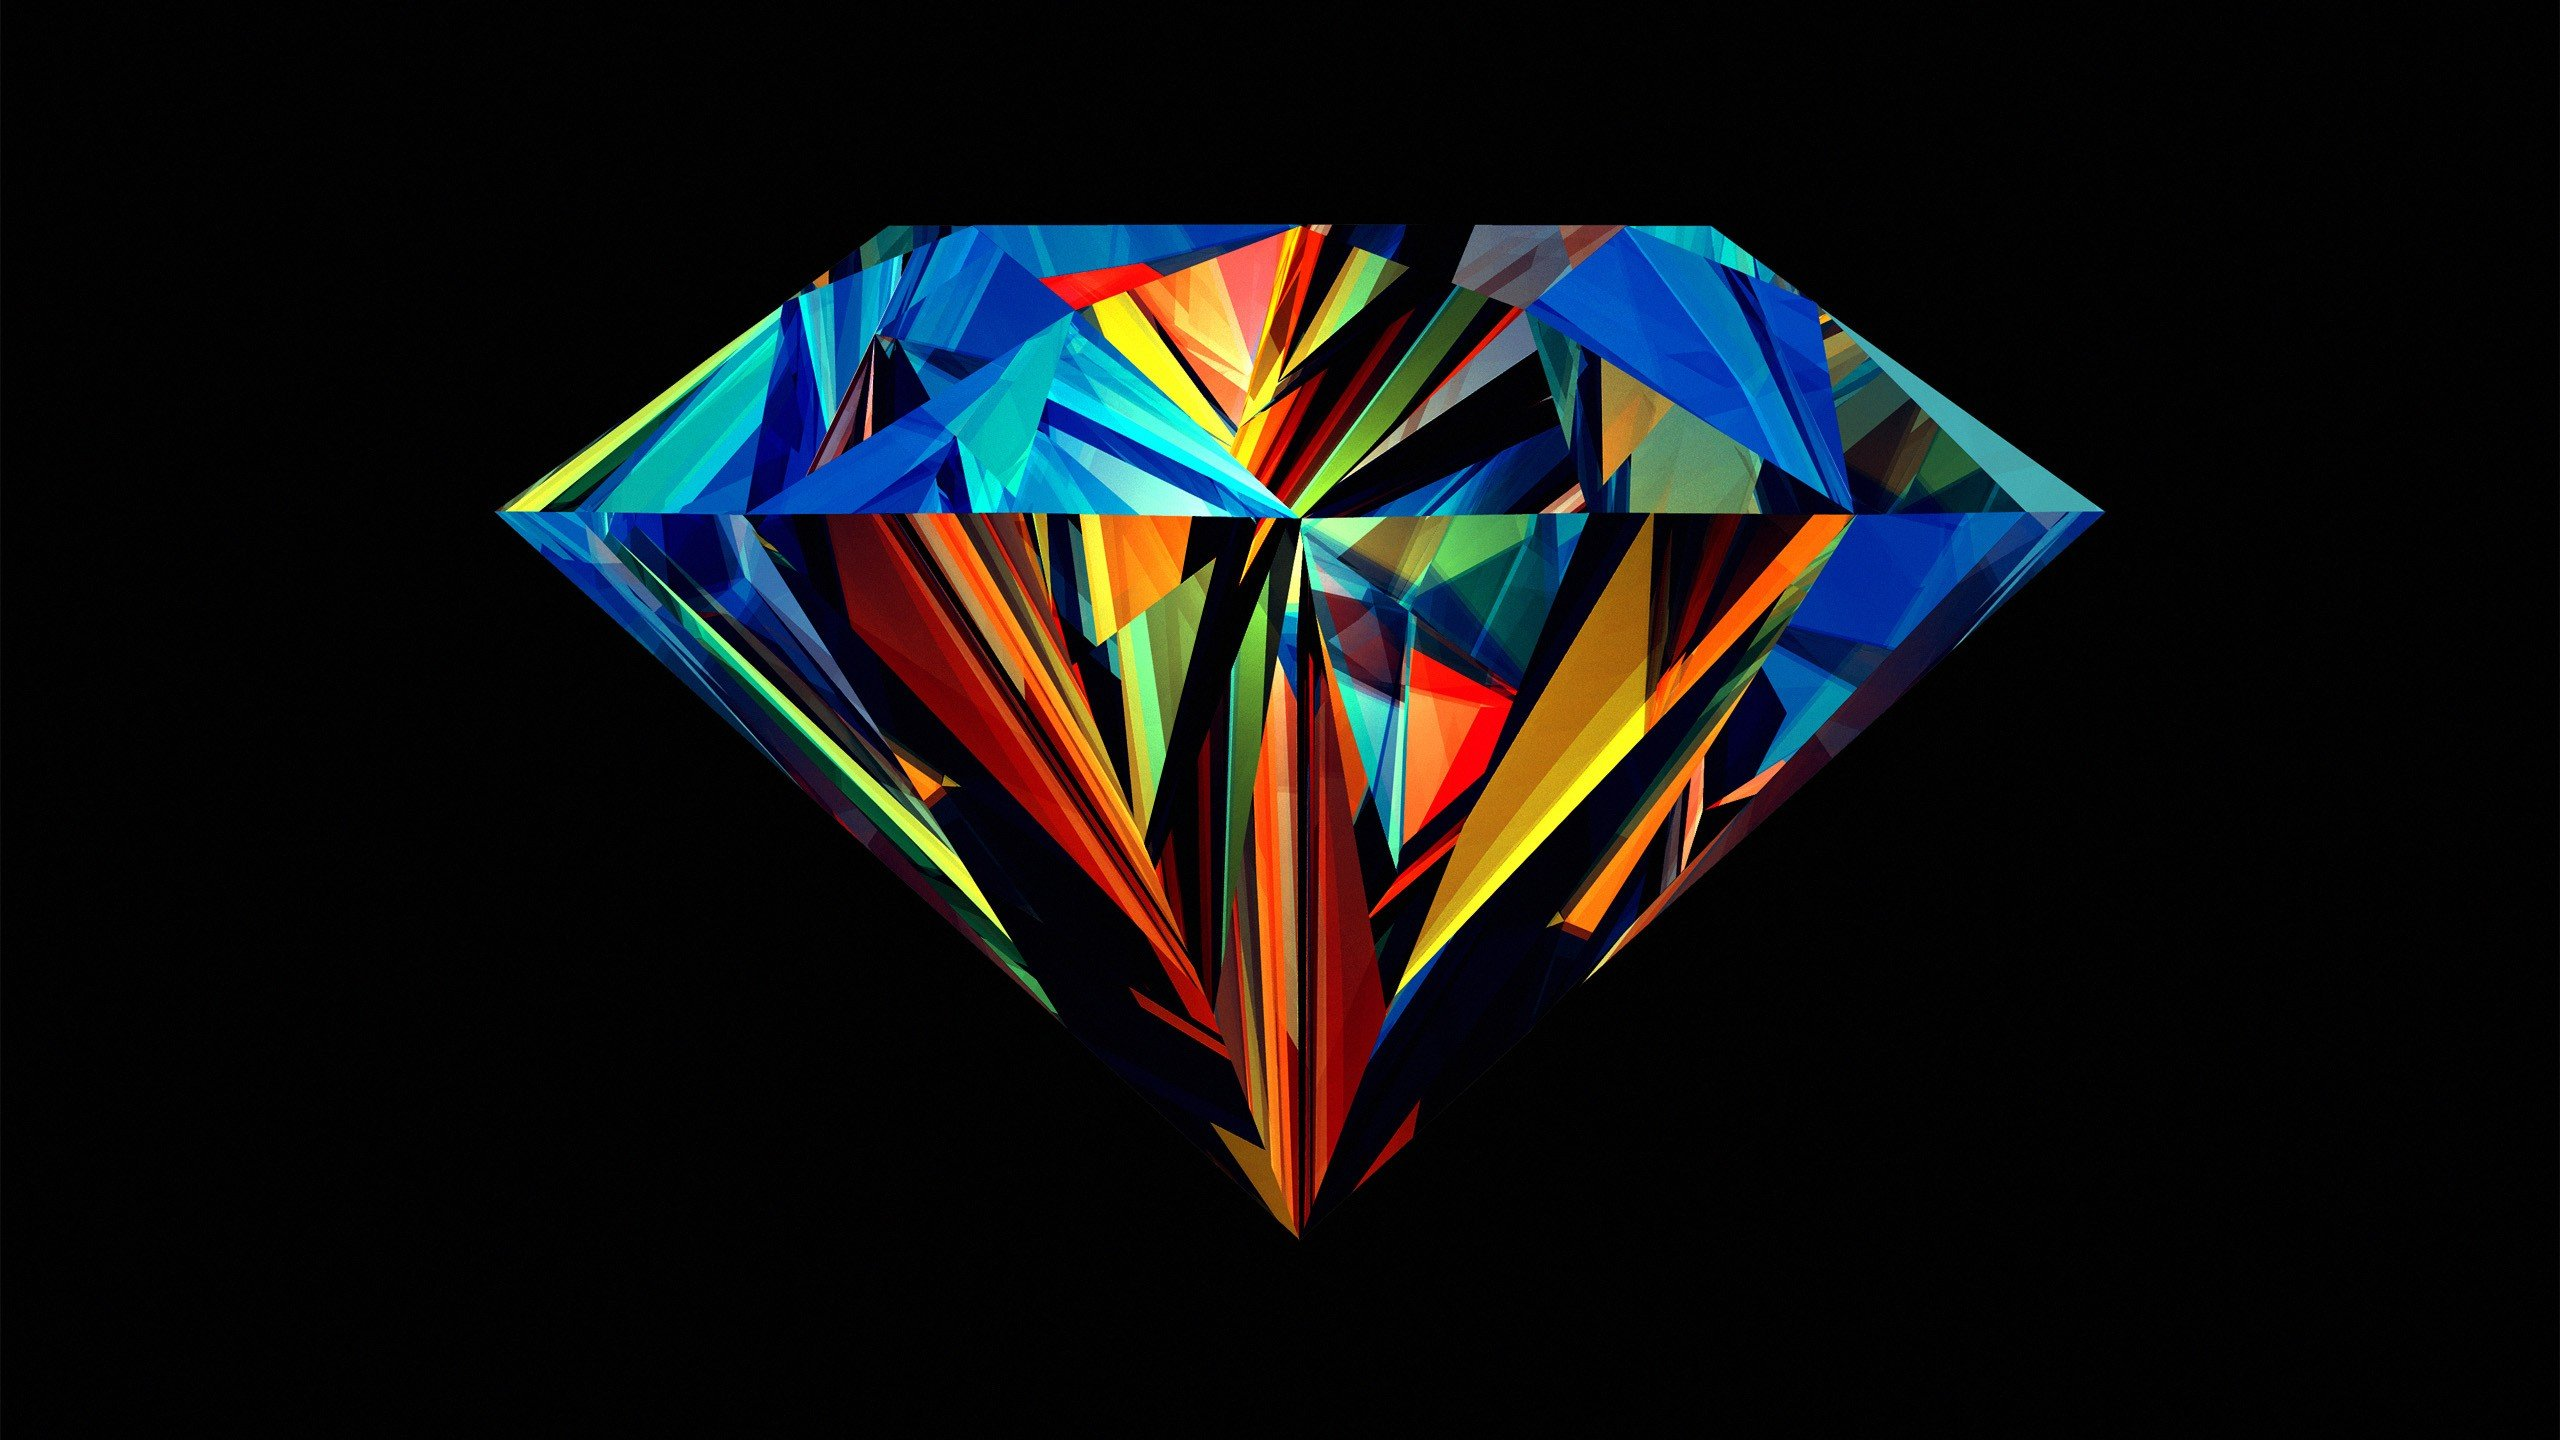 Most Inspiring Wallpaper Mobile Colorful - Abstract-Colored-Diamond  2018_1912.jpg